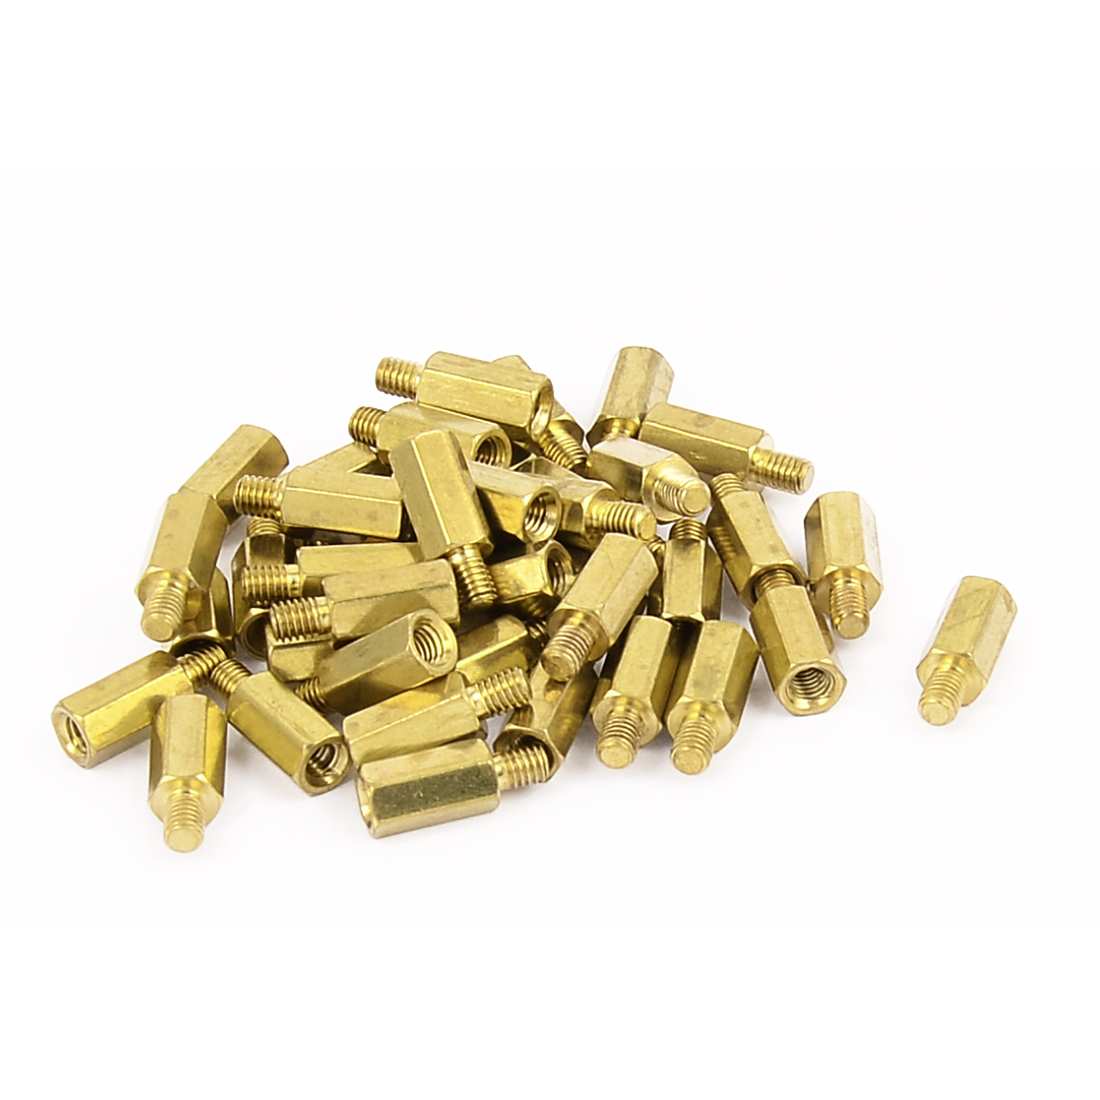 40 Pcs PC PCB Motherboard Brass Standoff Hexagonal Spacer M3 9+4mm